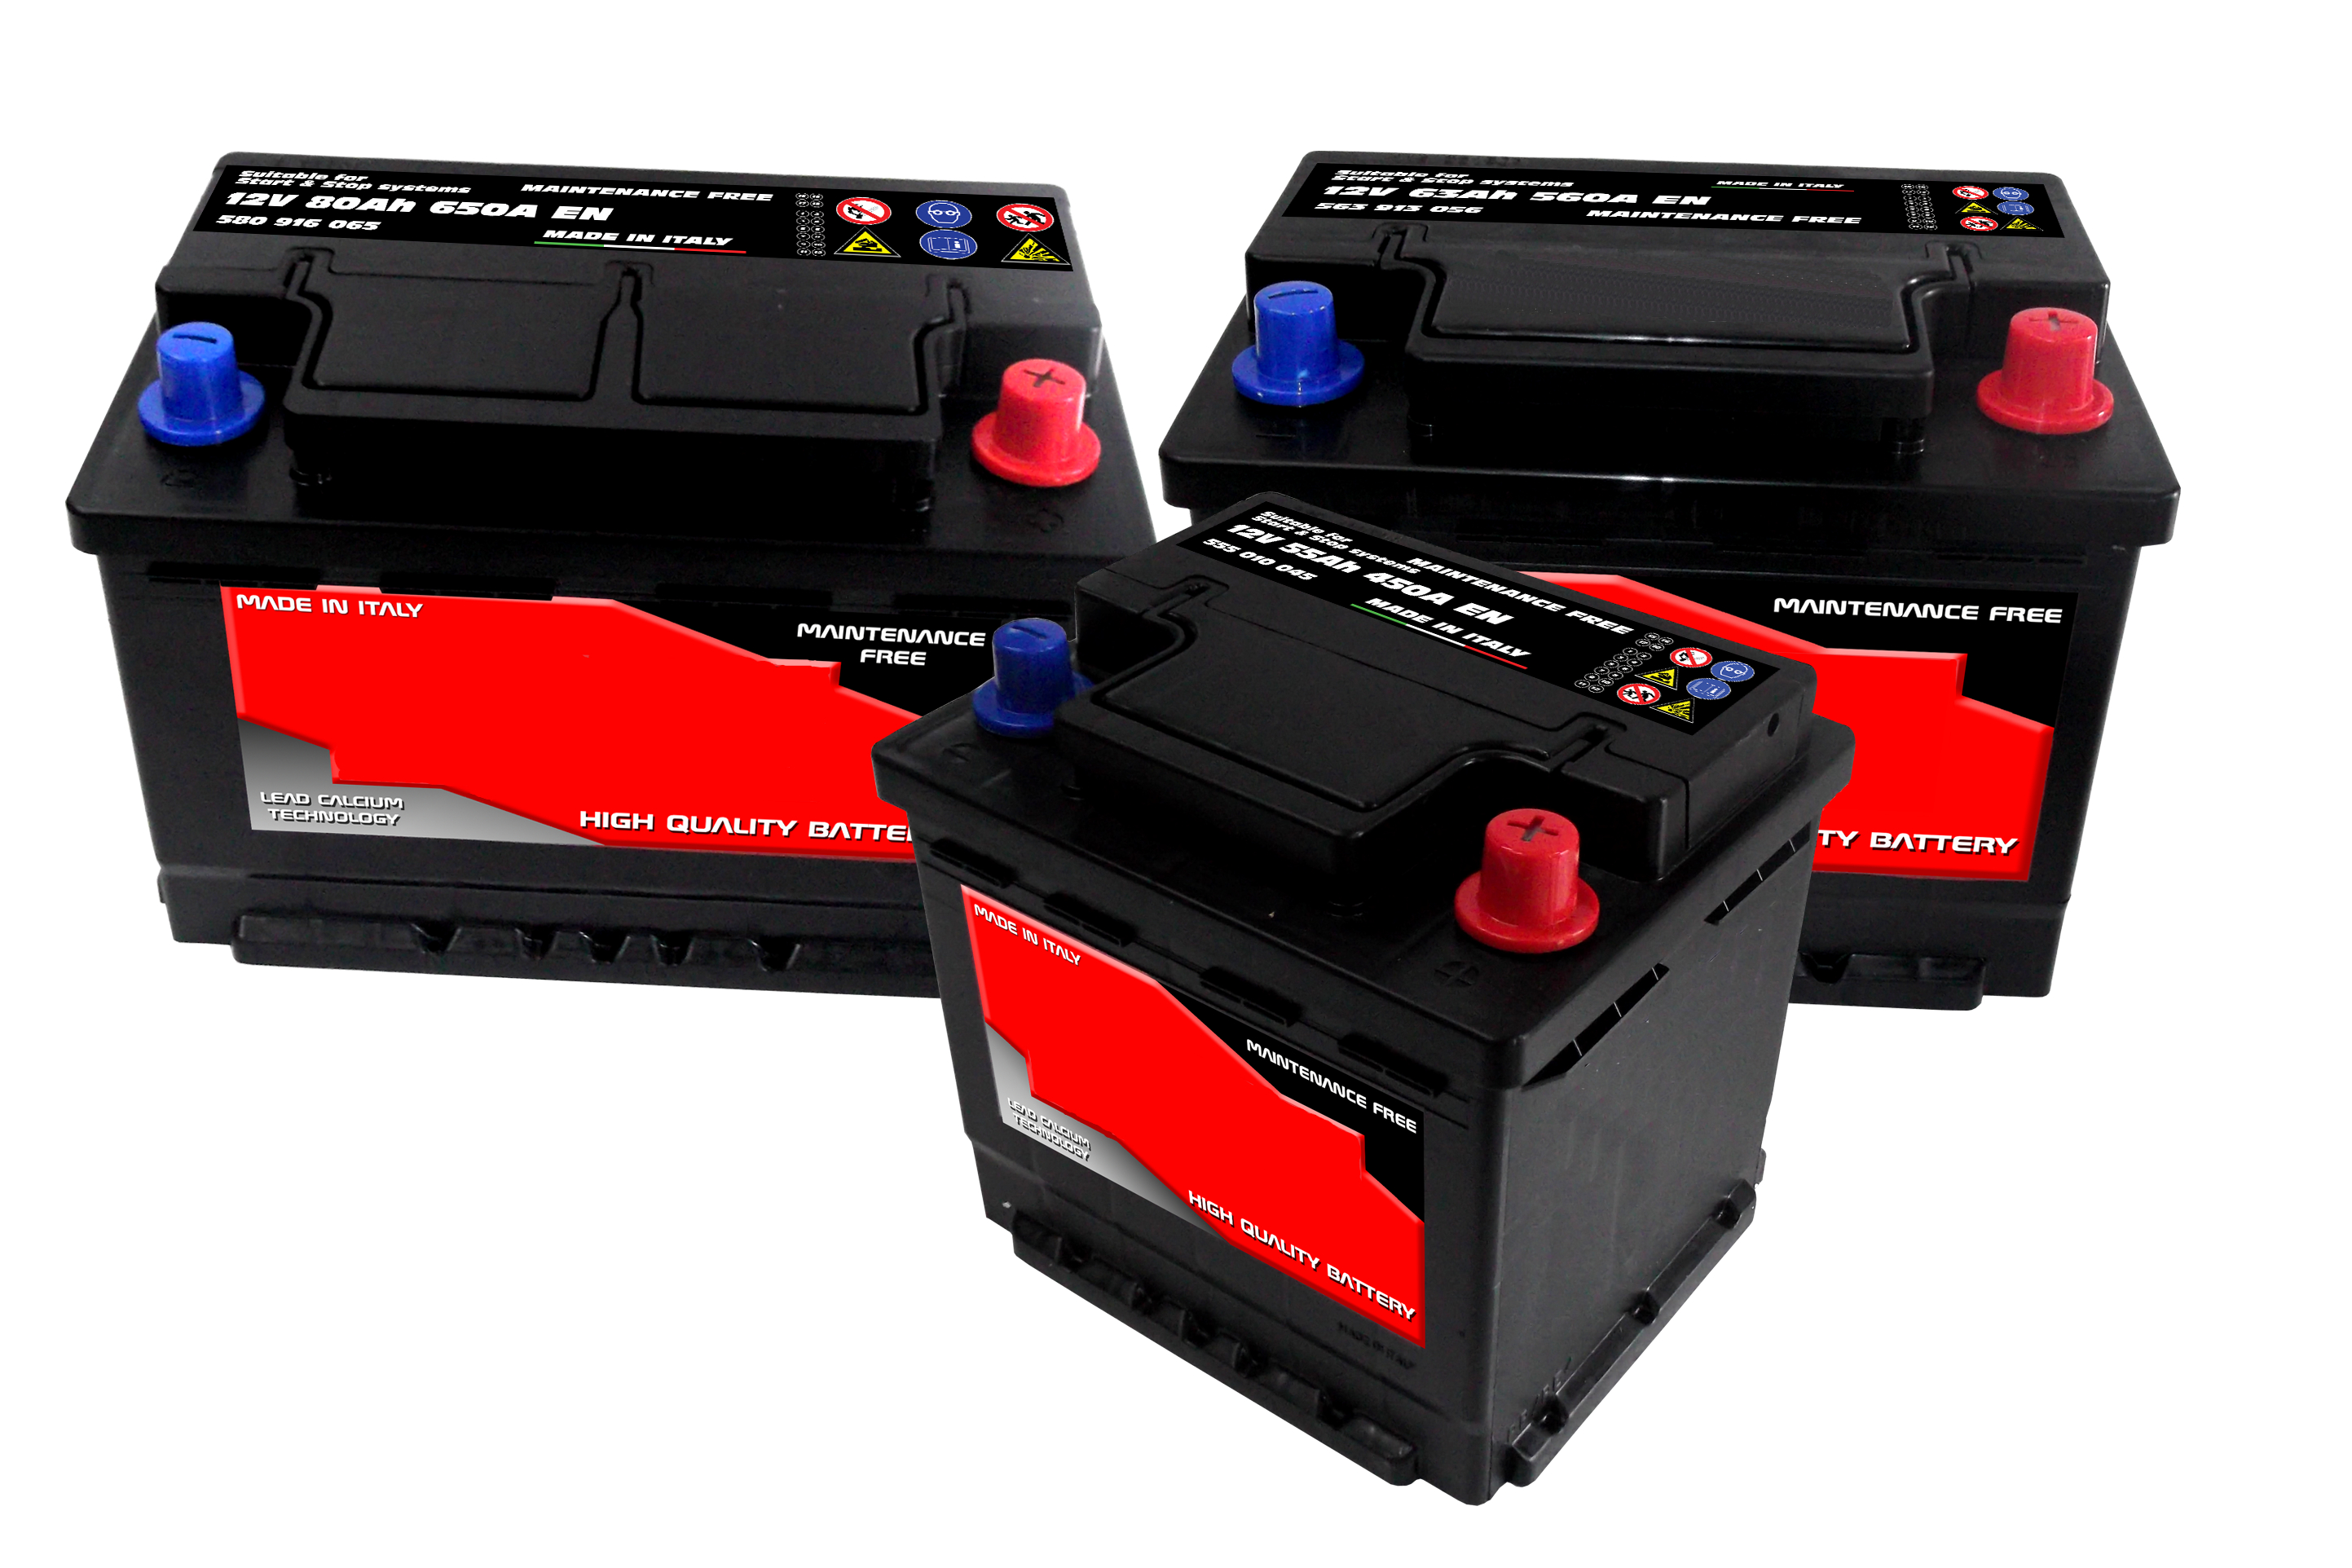 Batterie avviamento automotive serie AV Enerpower